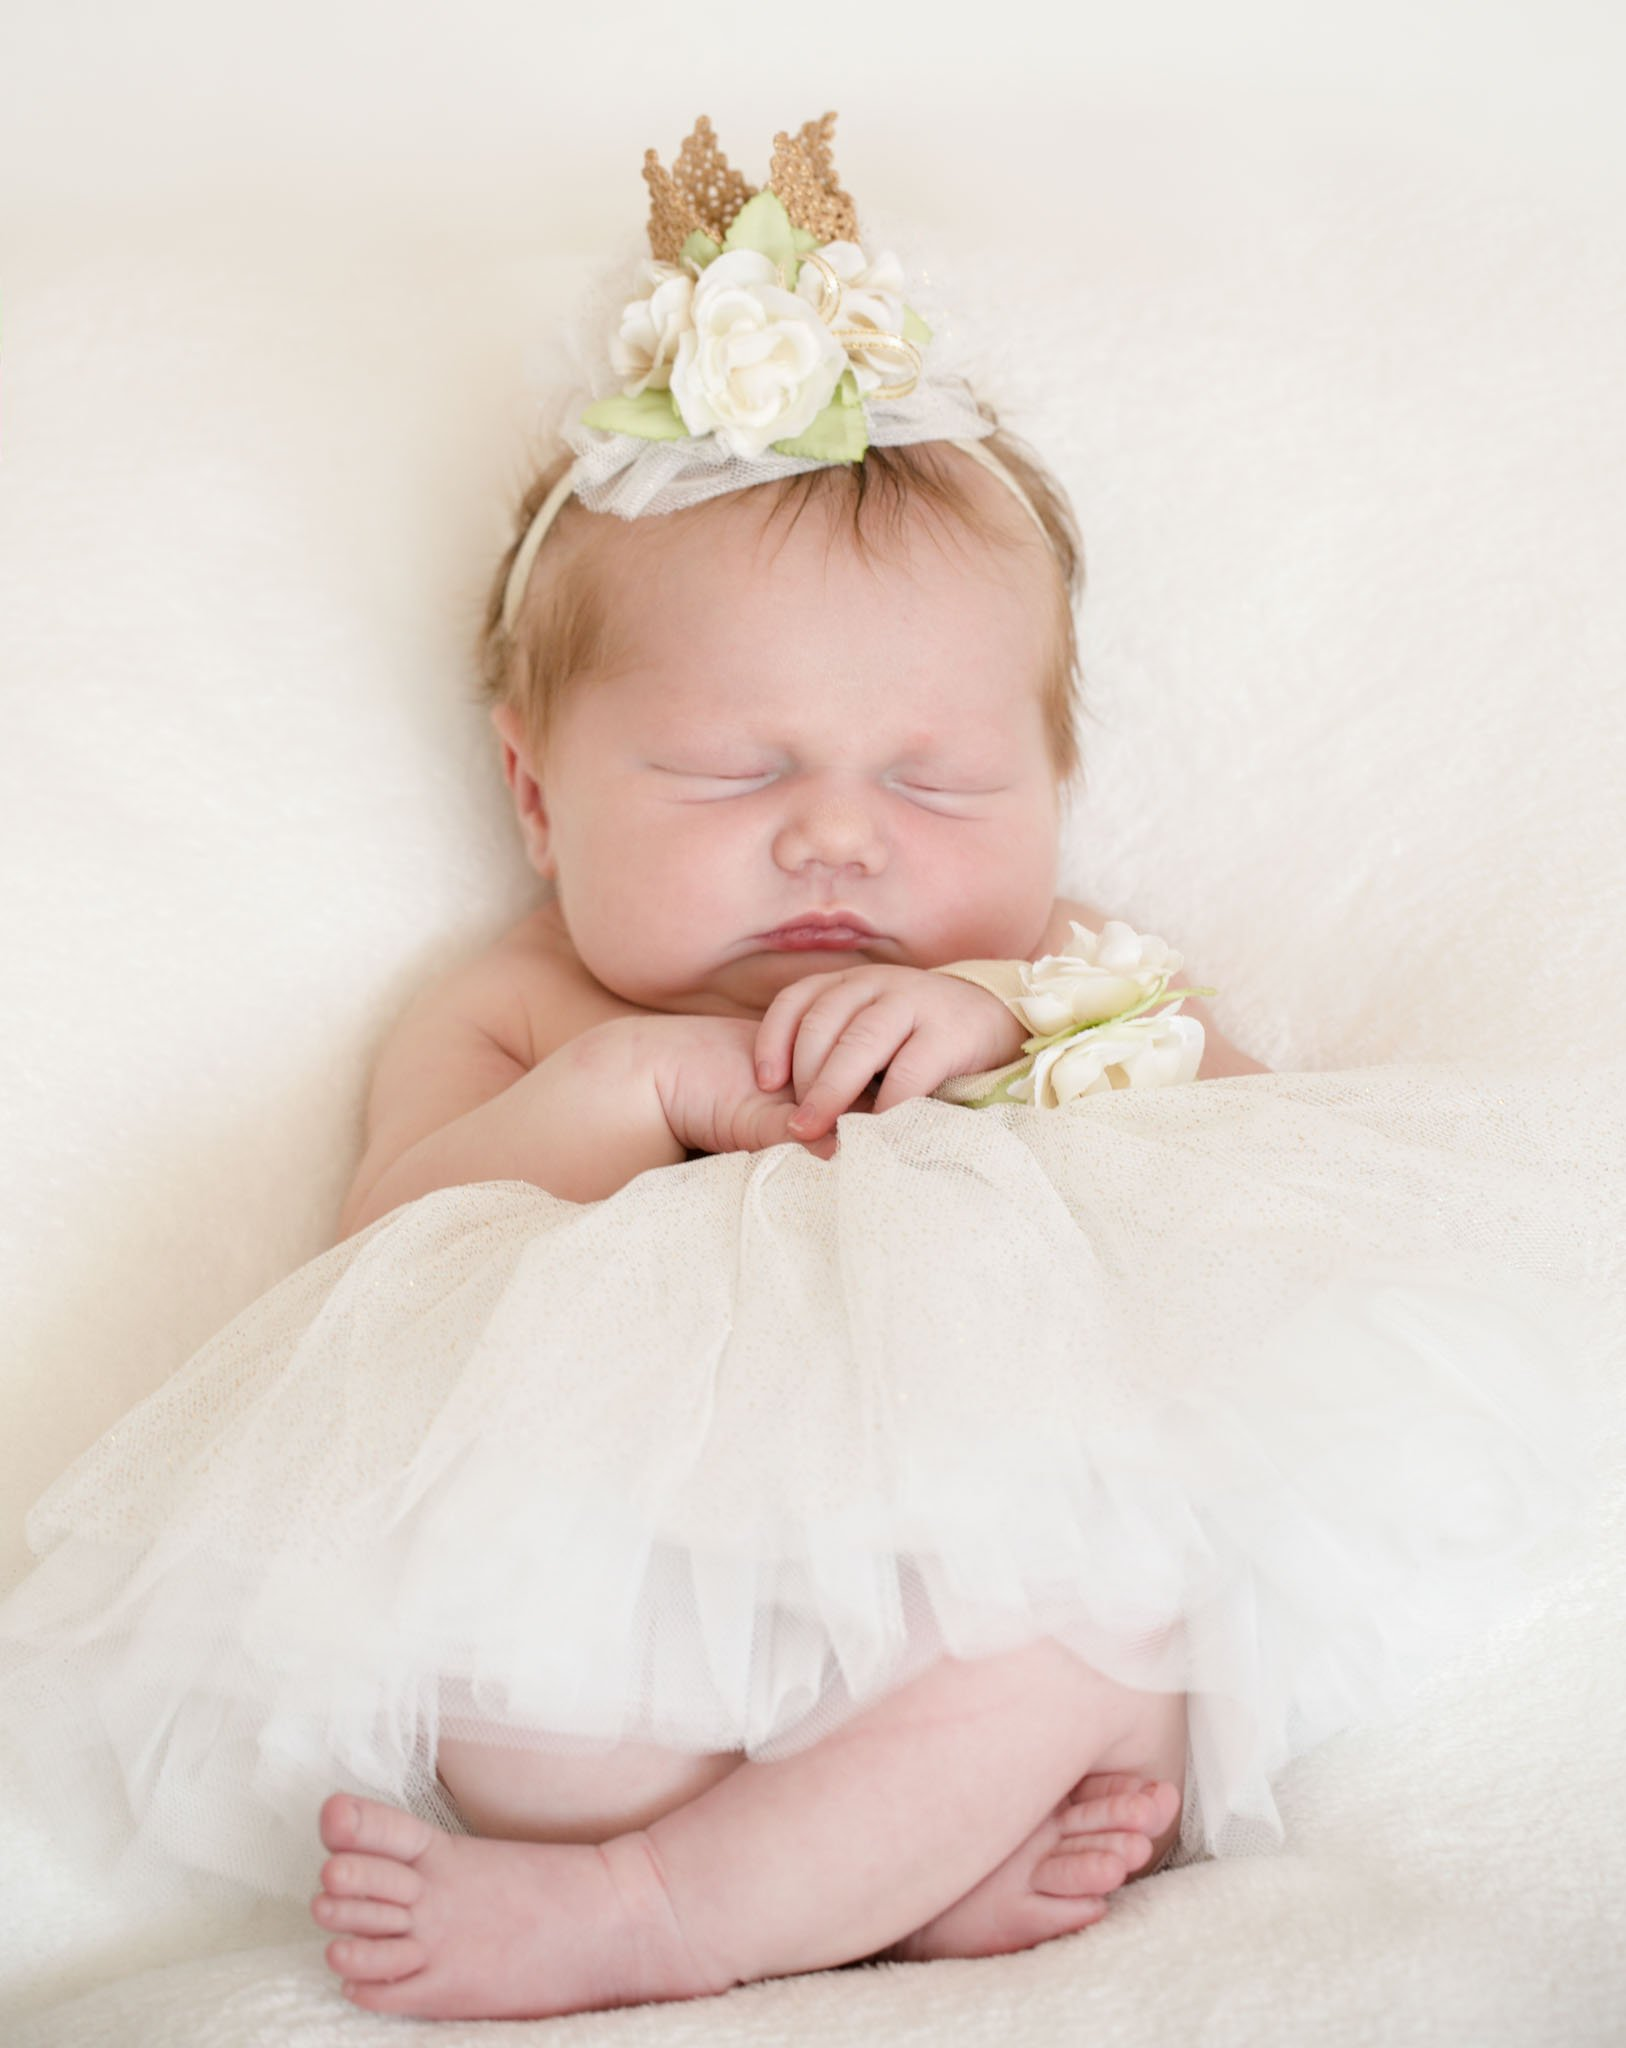 Newborn session with baby Anwen, five days new, Tania Mller Photography, Pontypool Newborn Photographer